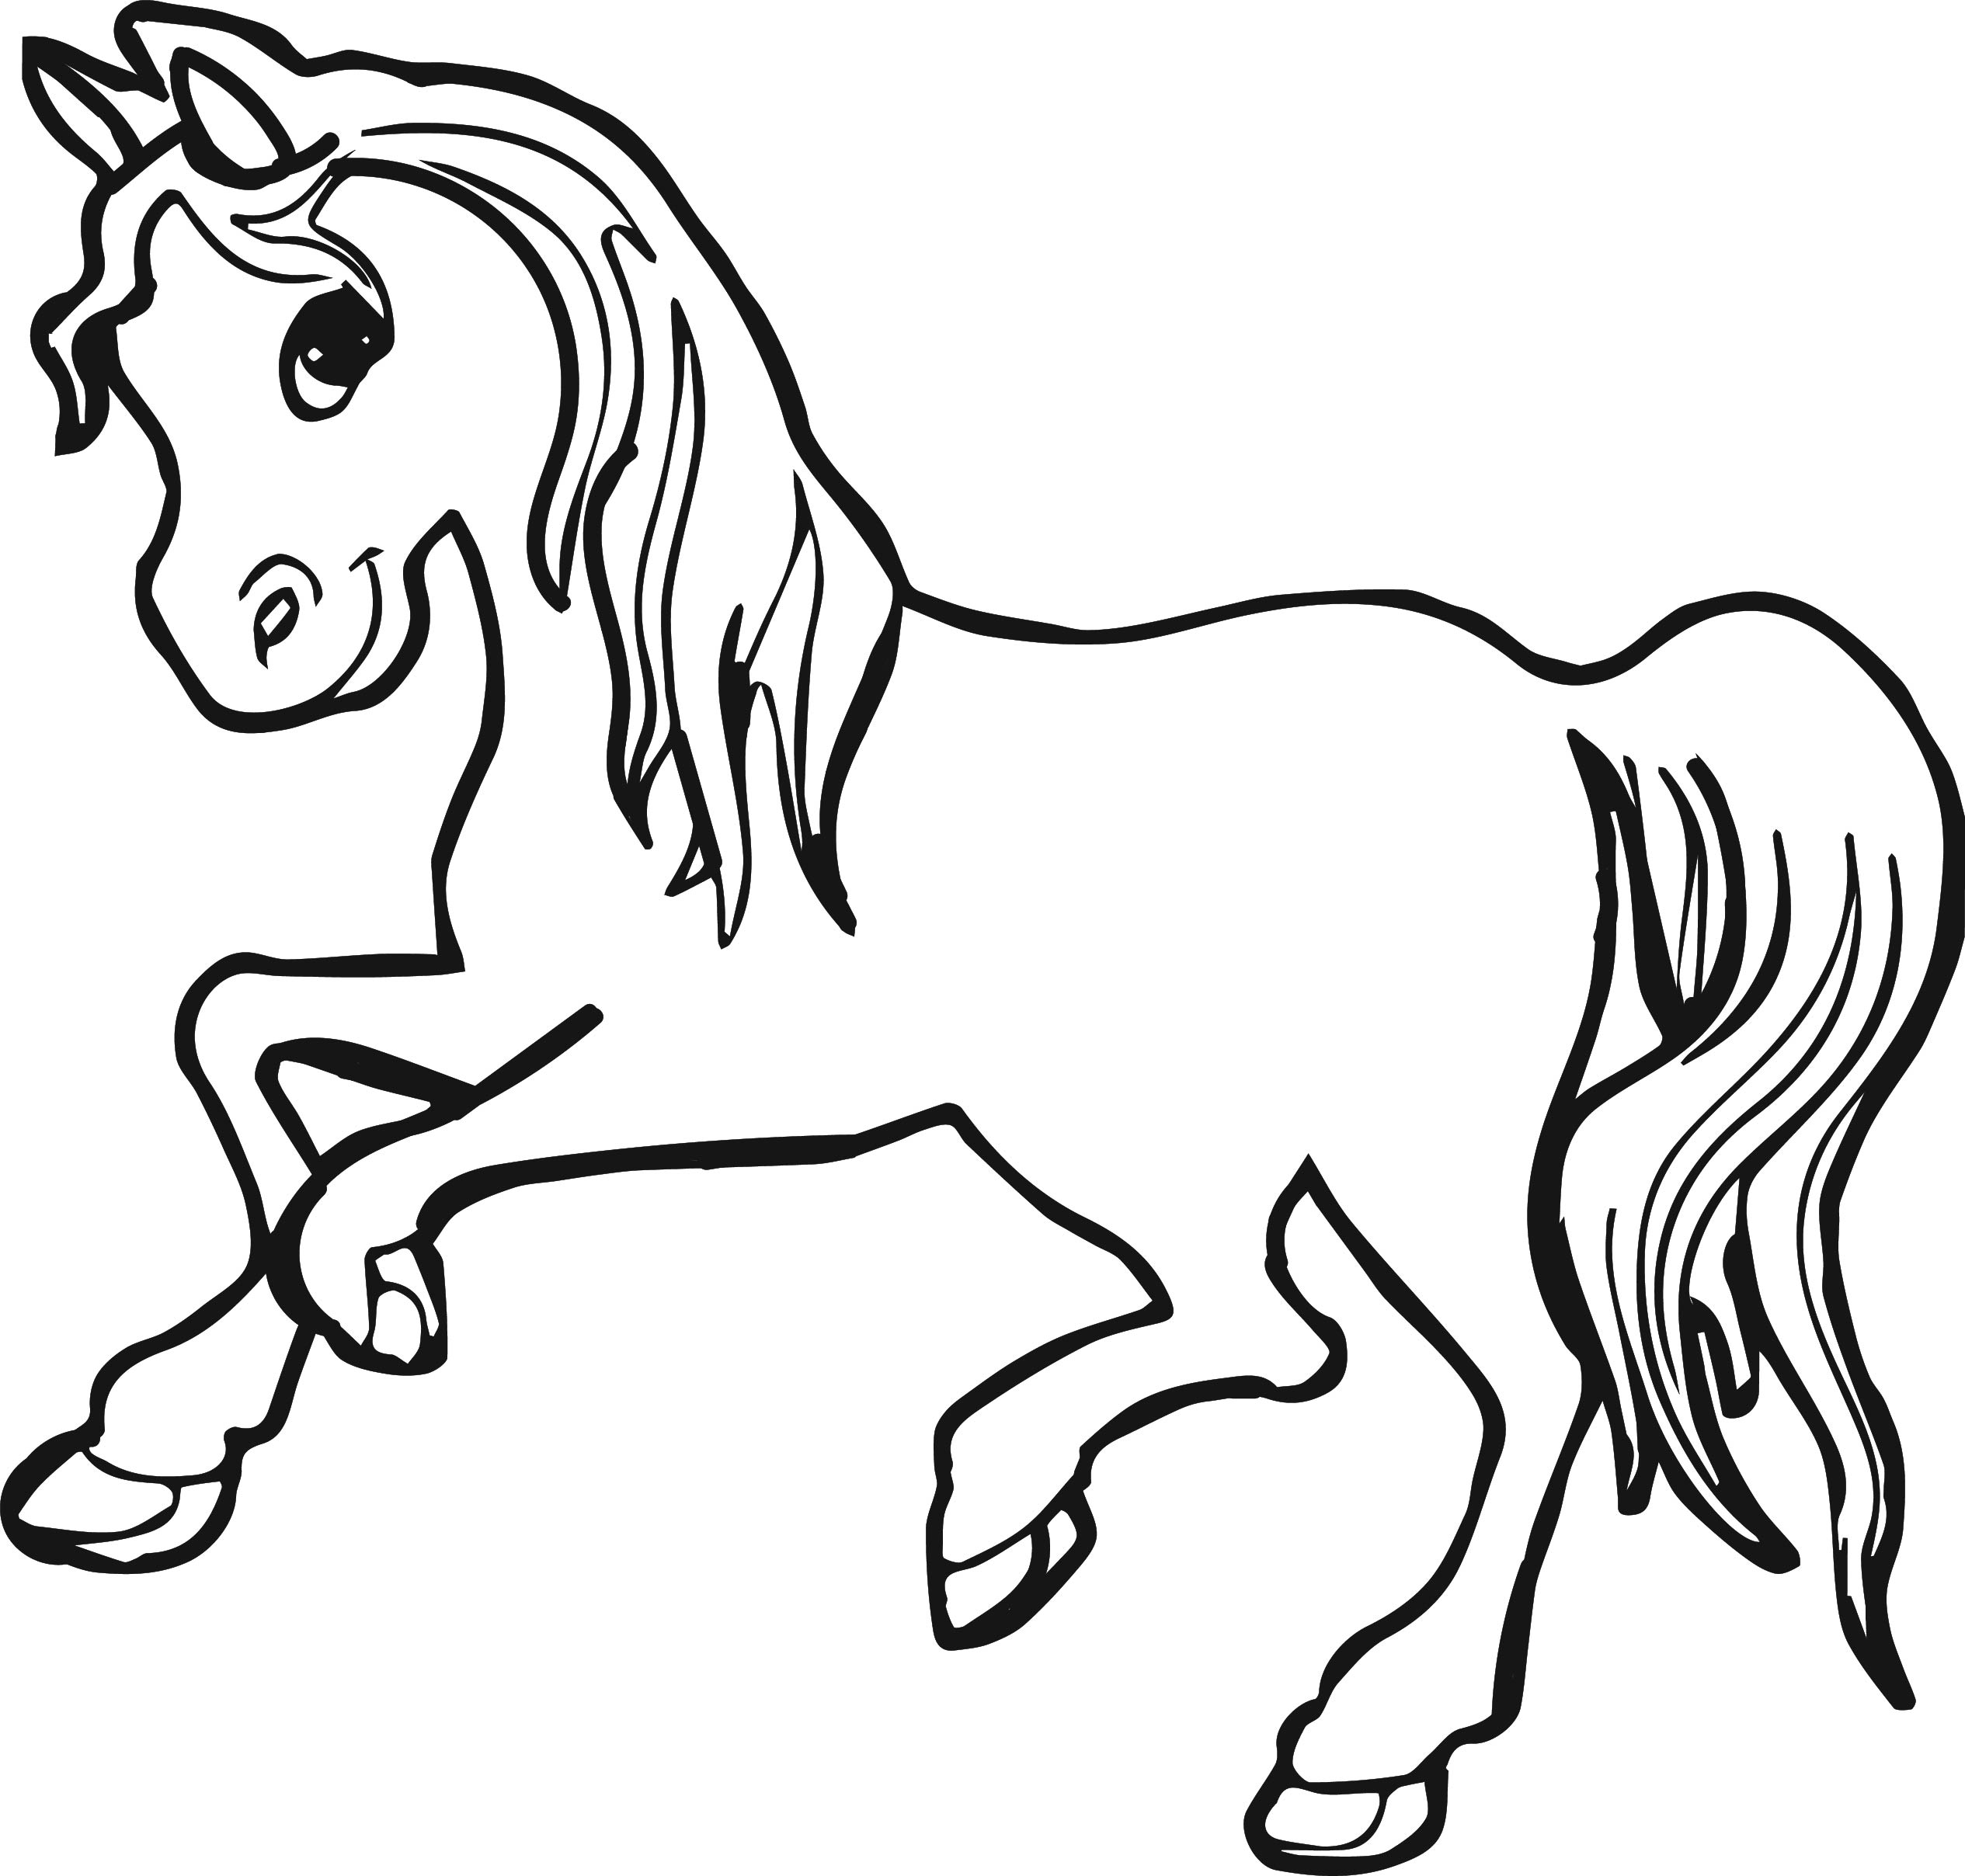 coloring page of a horse - horse coloring pages